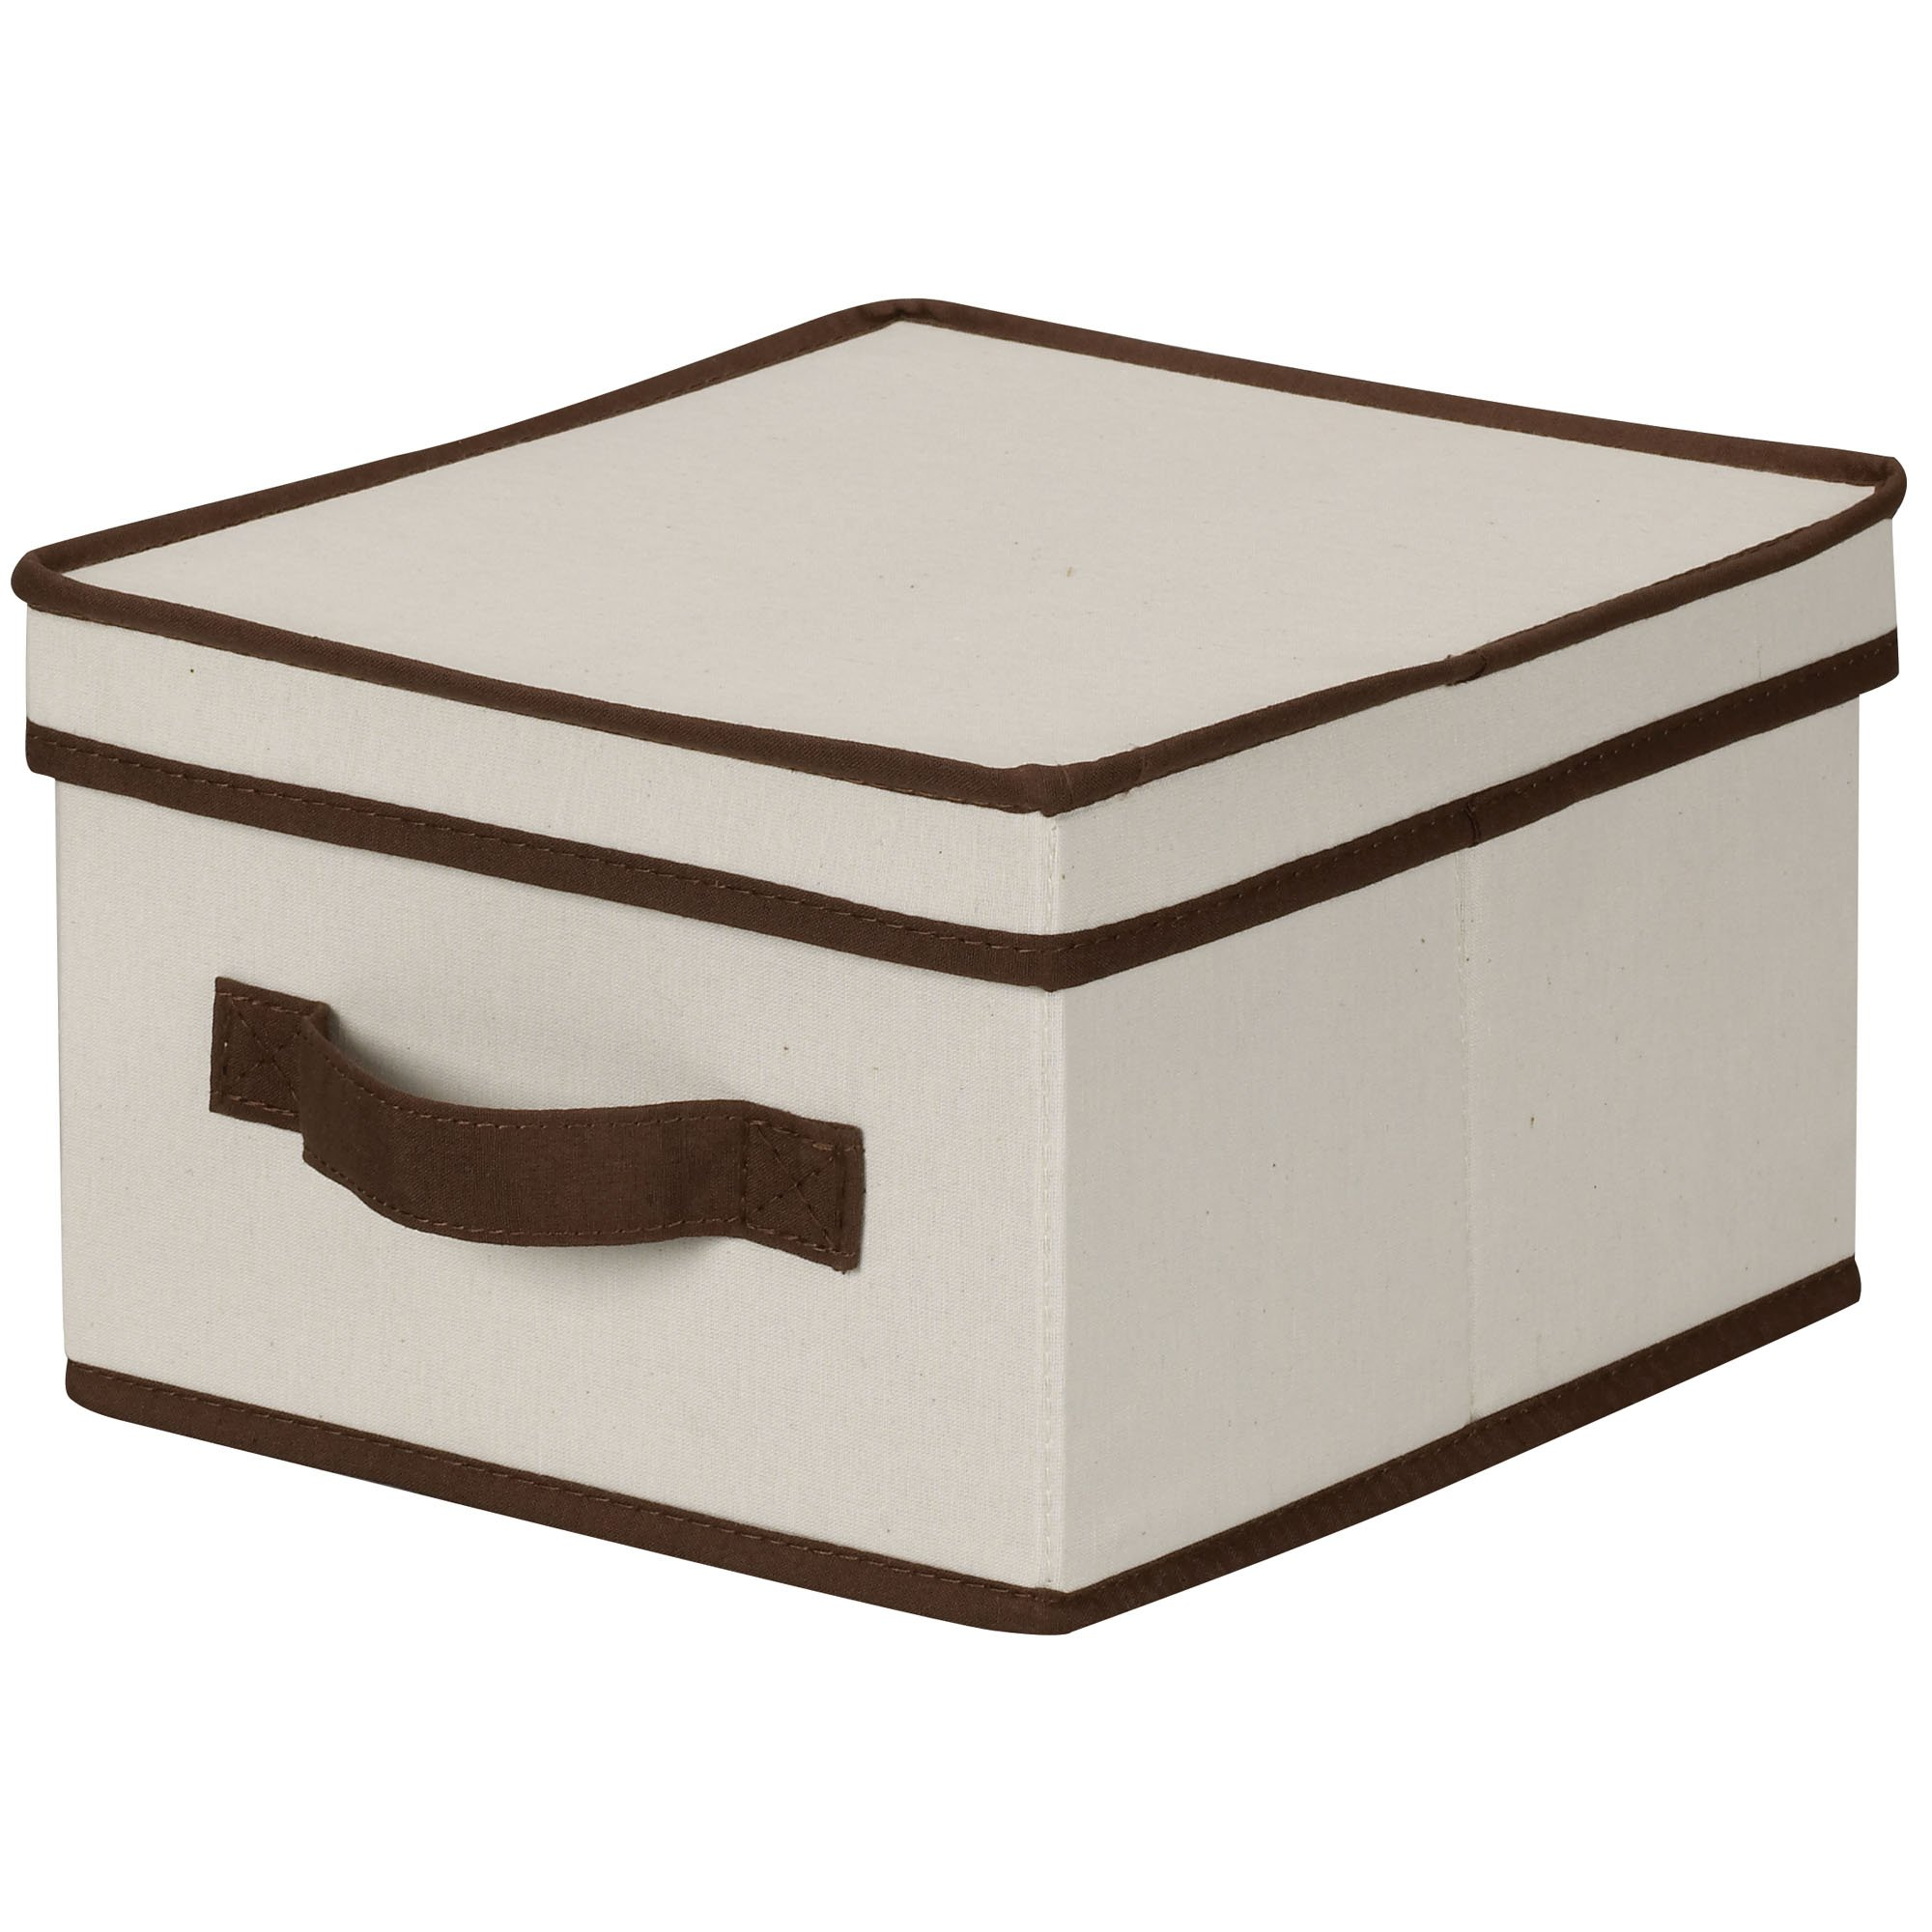 Household Essentials 511 Storage Box with Lid and Handle - Natural Beige Canvas with Brown Trim- Medium